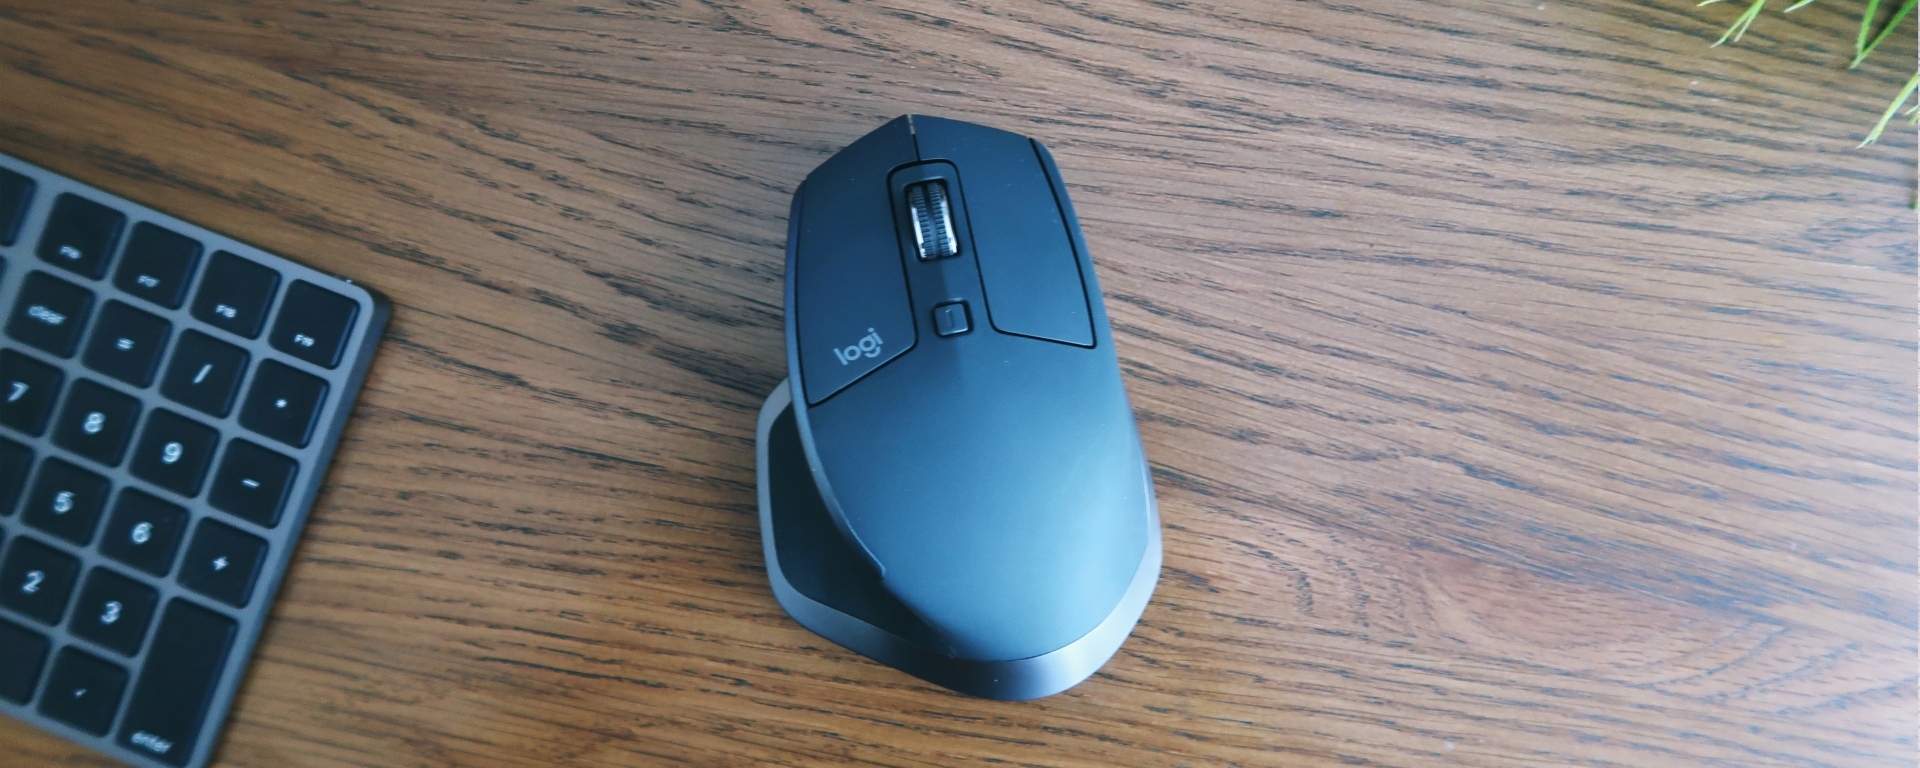 Review: Logitech MX Master 2S – The mouse for power users